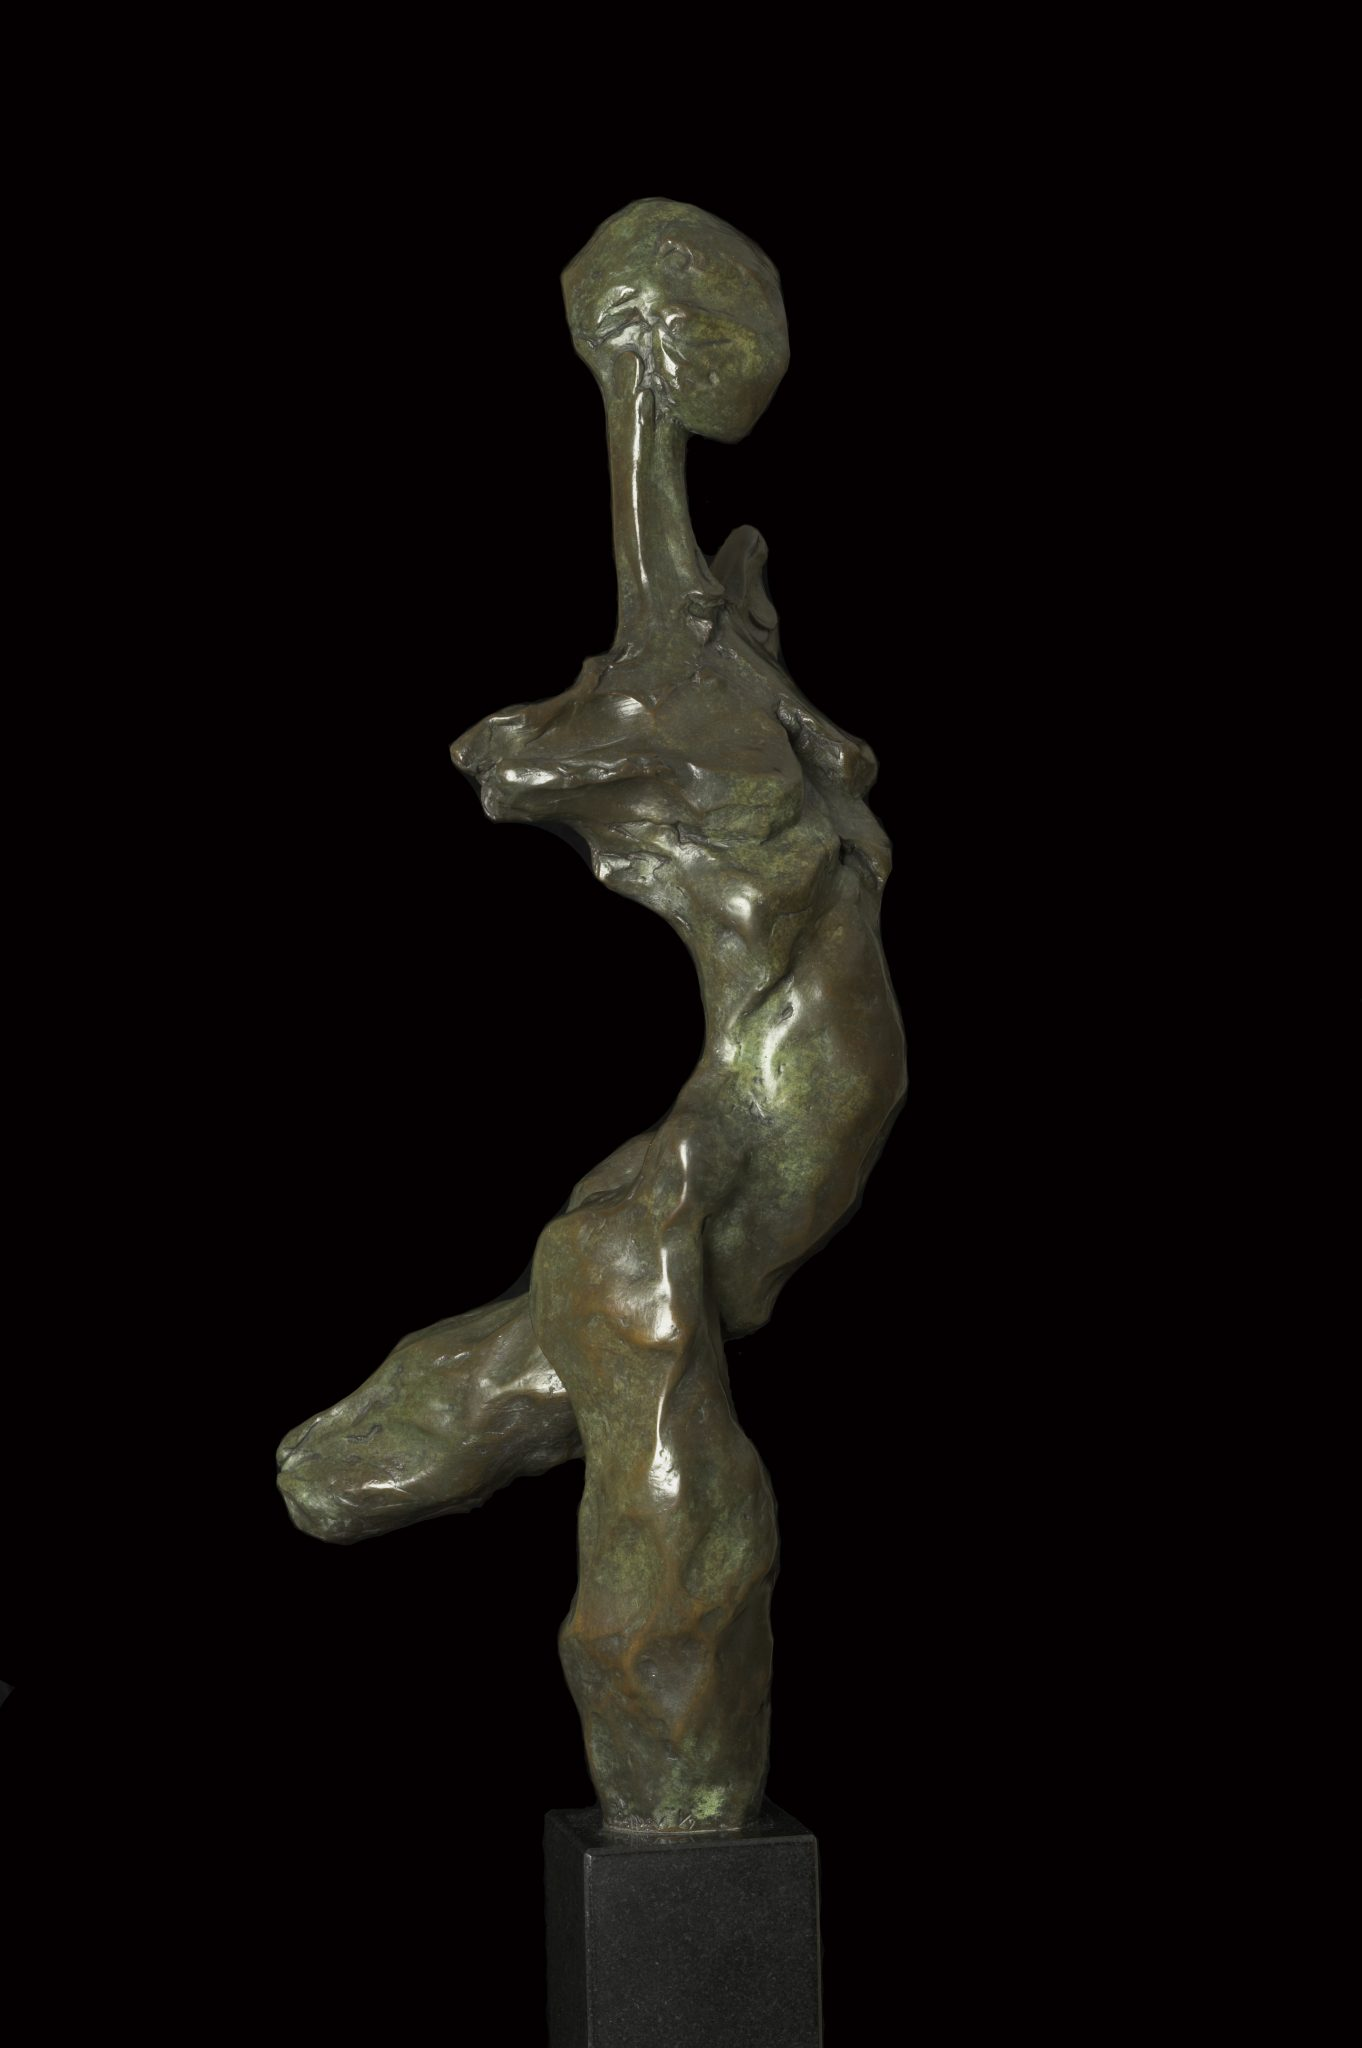 Bronze sculpture of dancing figure derived from flint